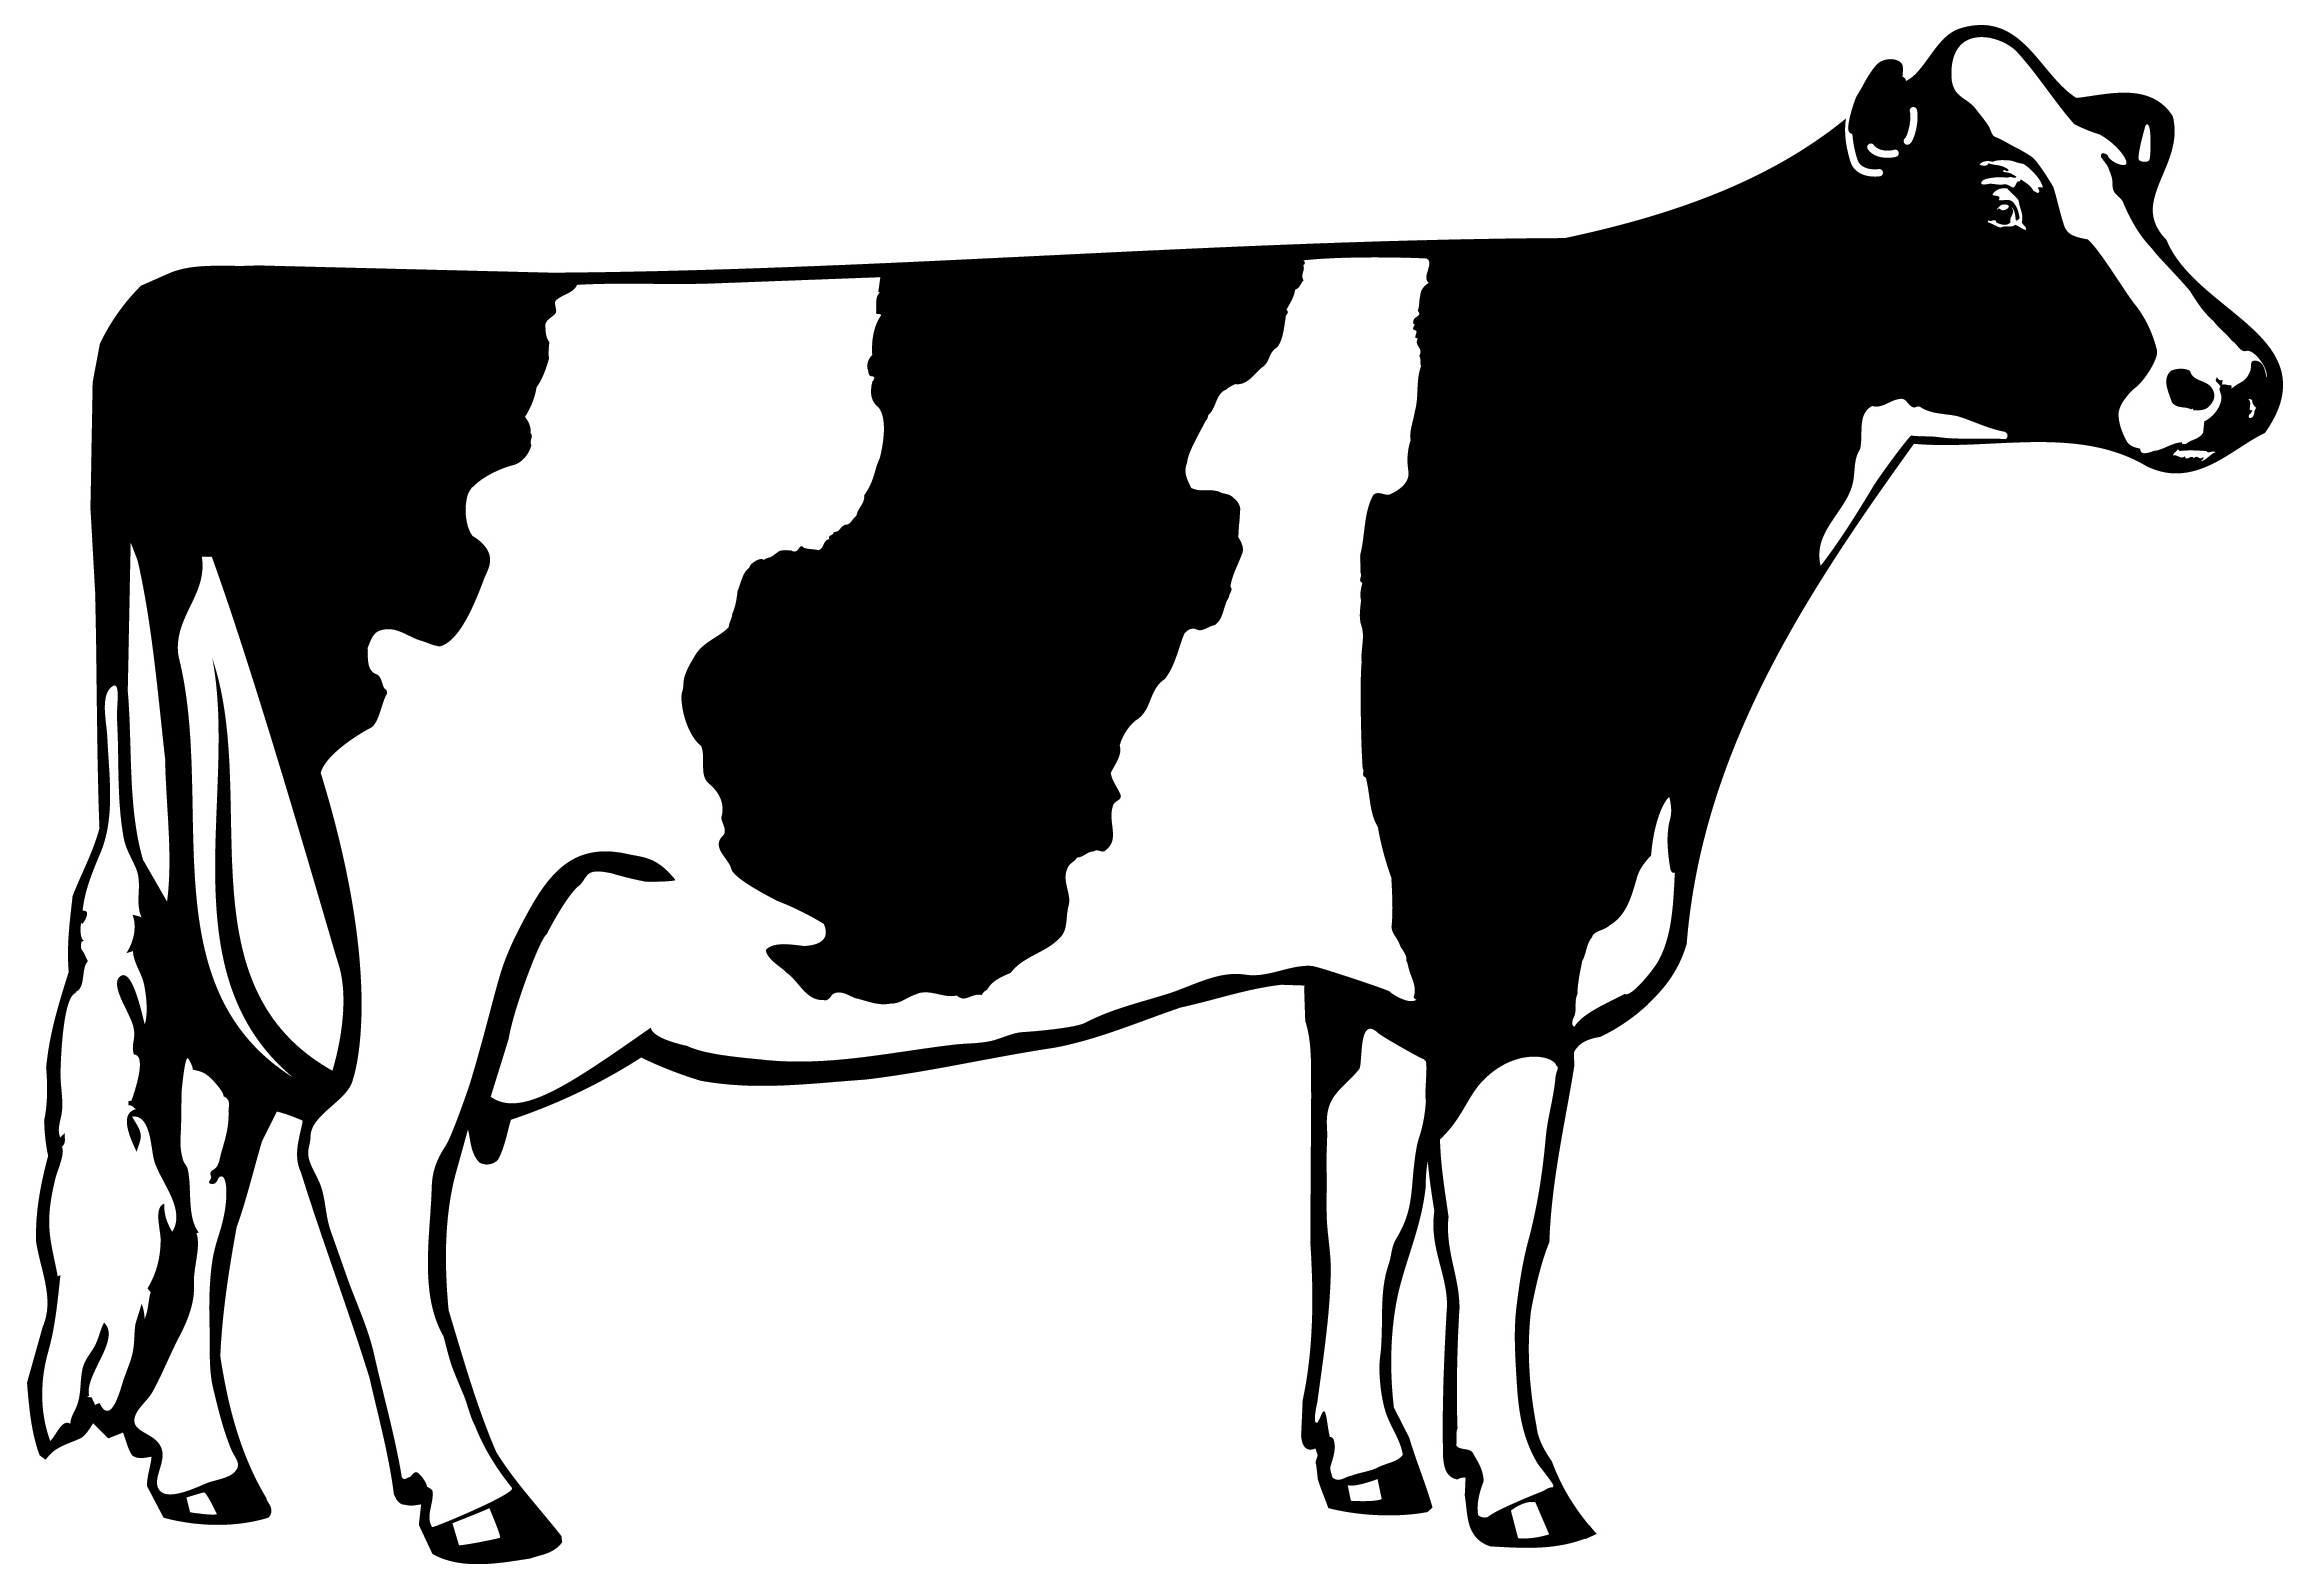 Cattle clipart real cow. Fresh cows gallery digital